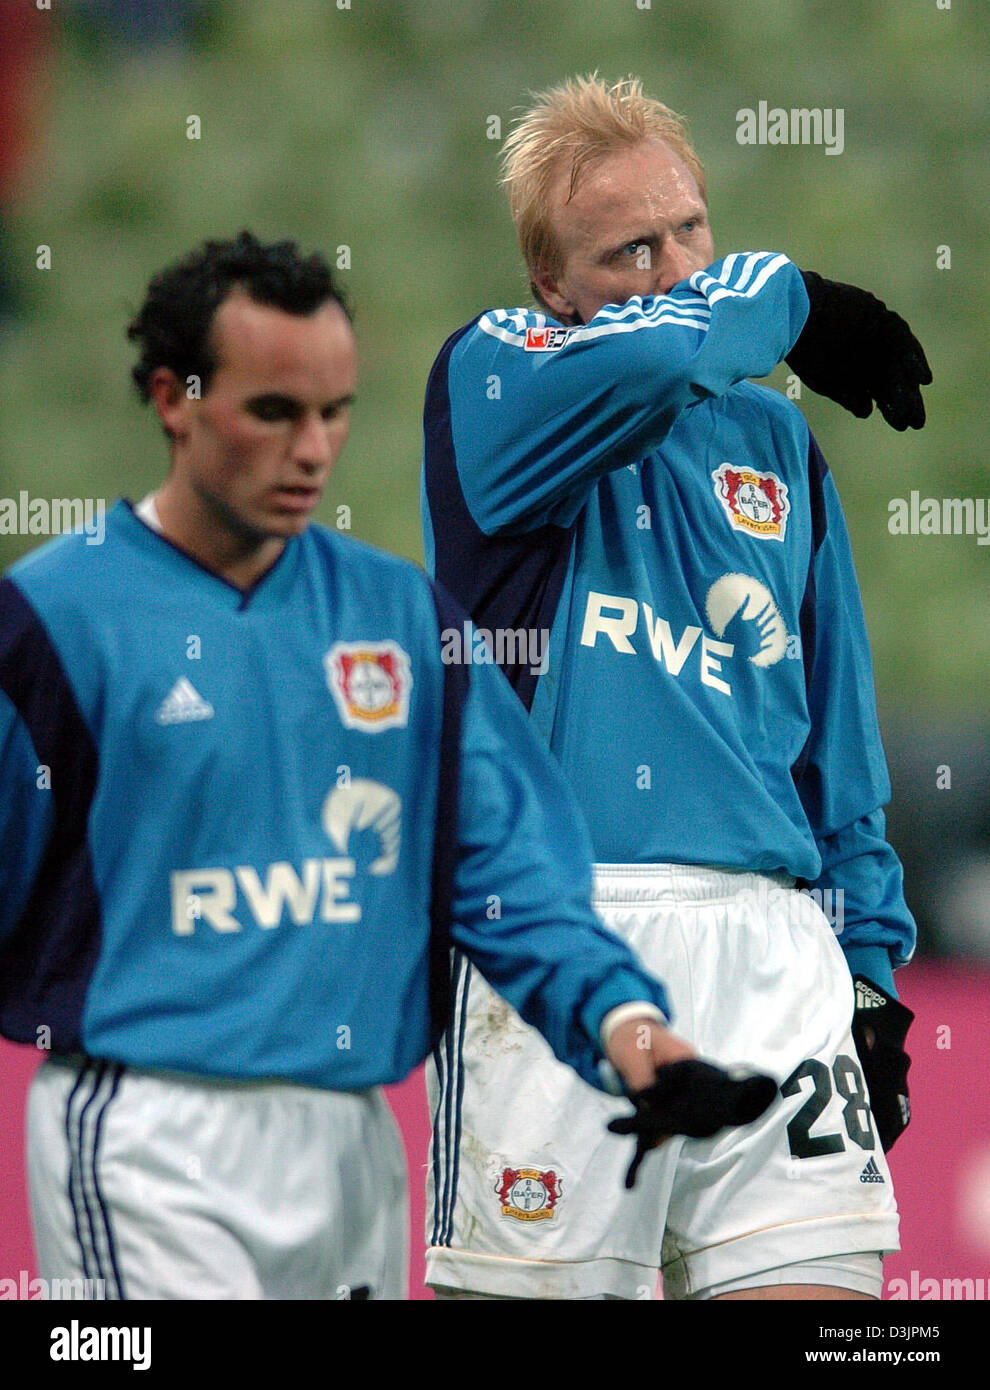 finest selection 040ce bb2a5 dpa) - Leverkusen players Landon Donovan (L) and Carsten ...